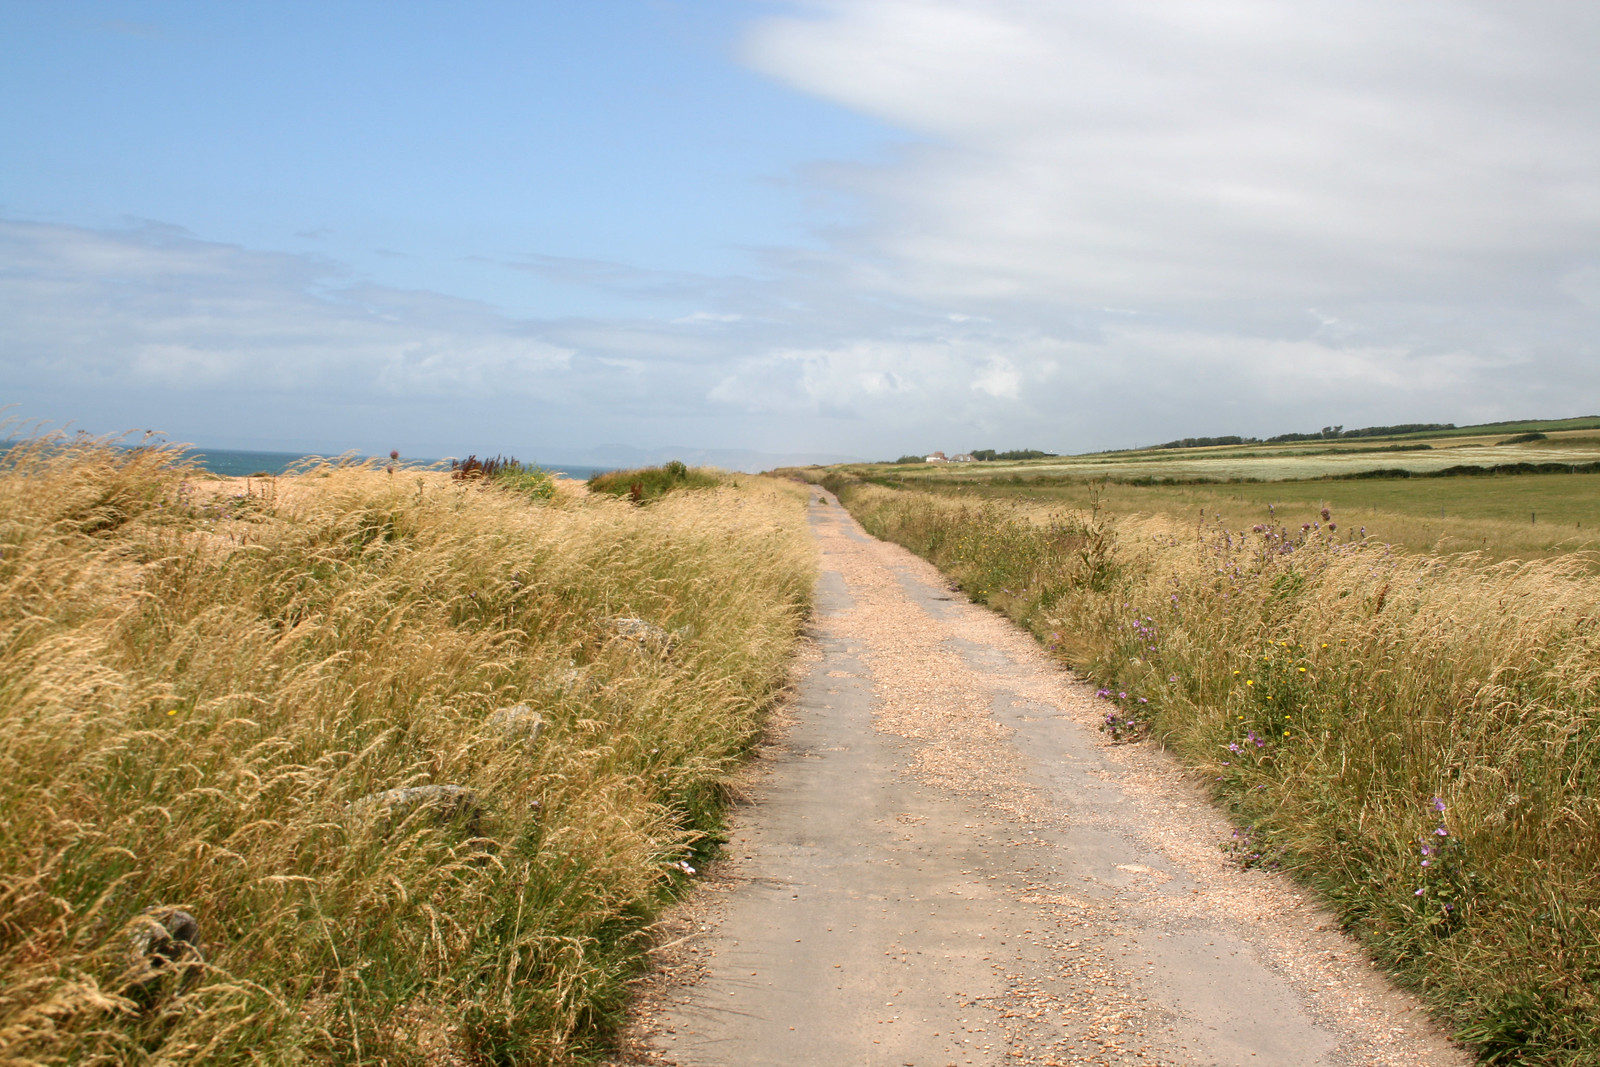 Coast road between Abbotsbury and West Bexington